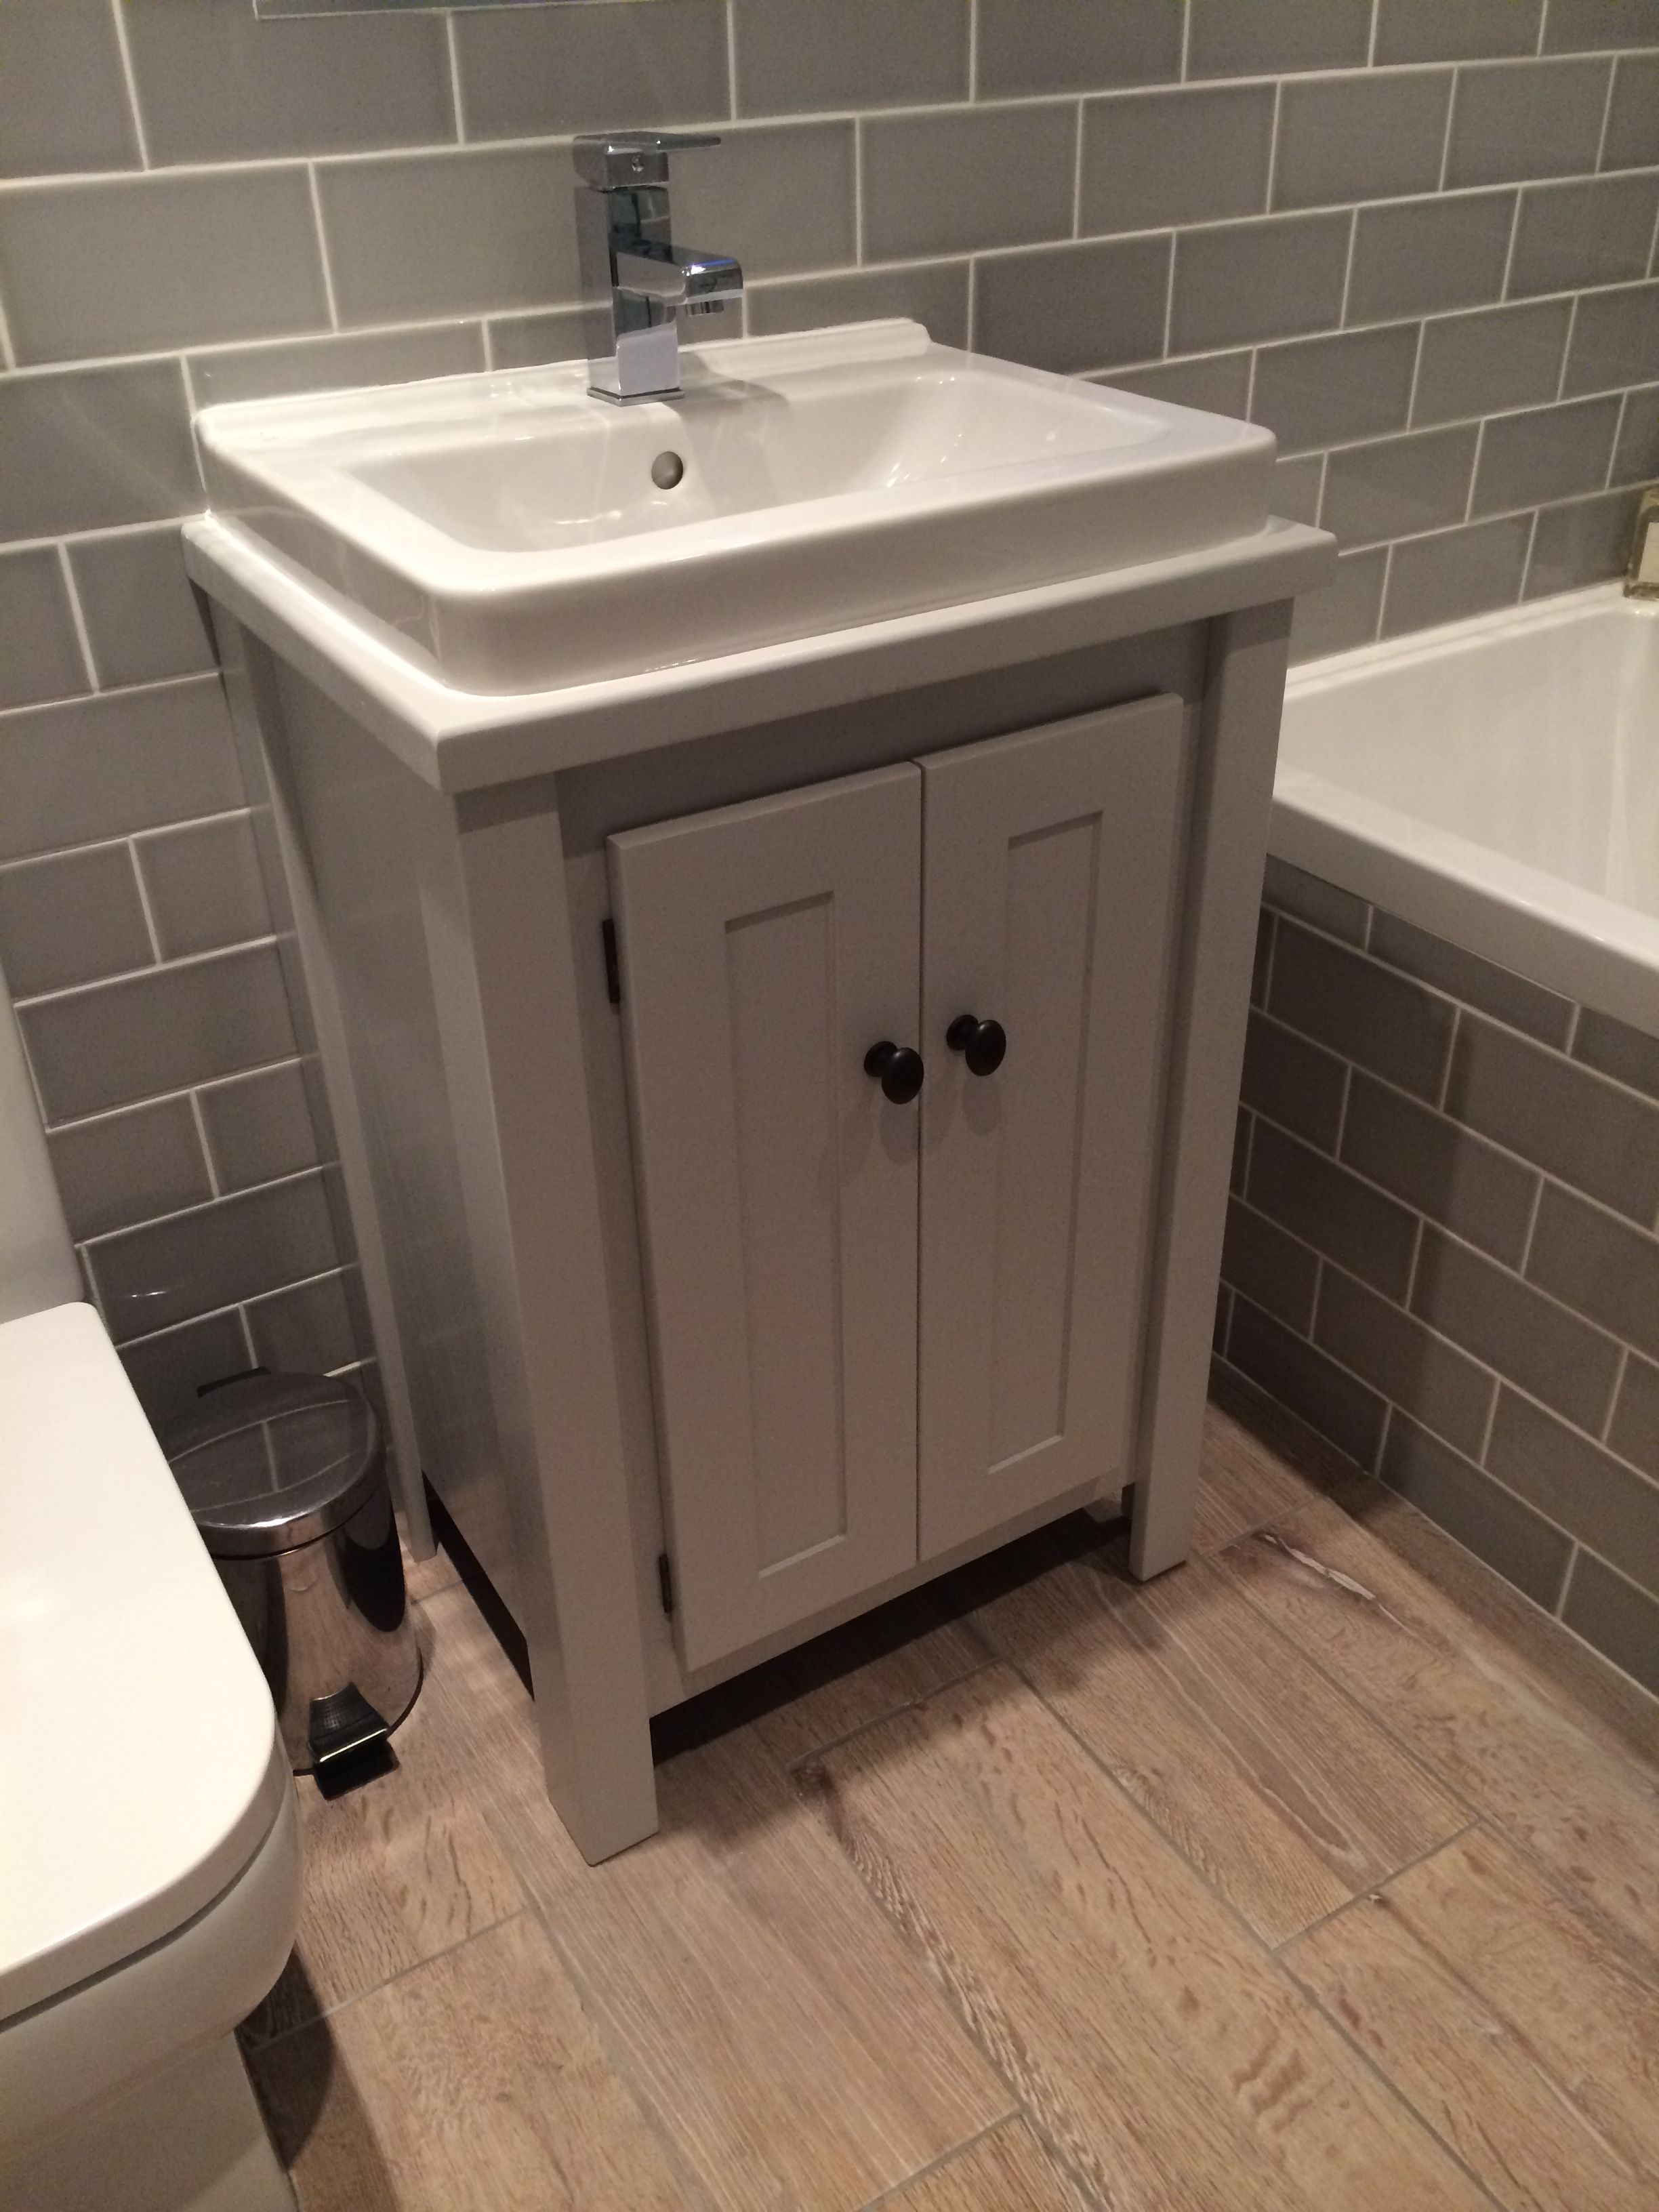 Bespoke Vanity Unit In Farrow Ball Pavillion Grey With White Marble Top Aspenn Furniture